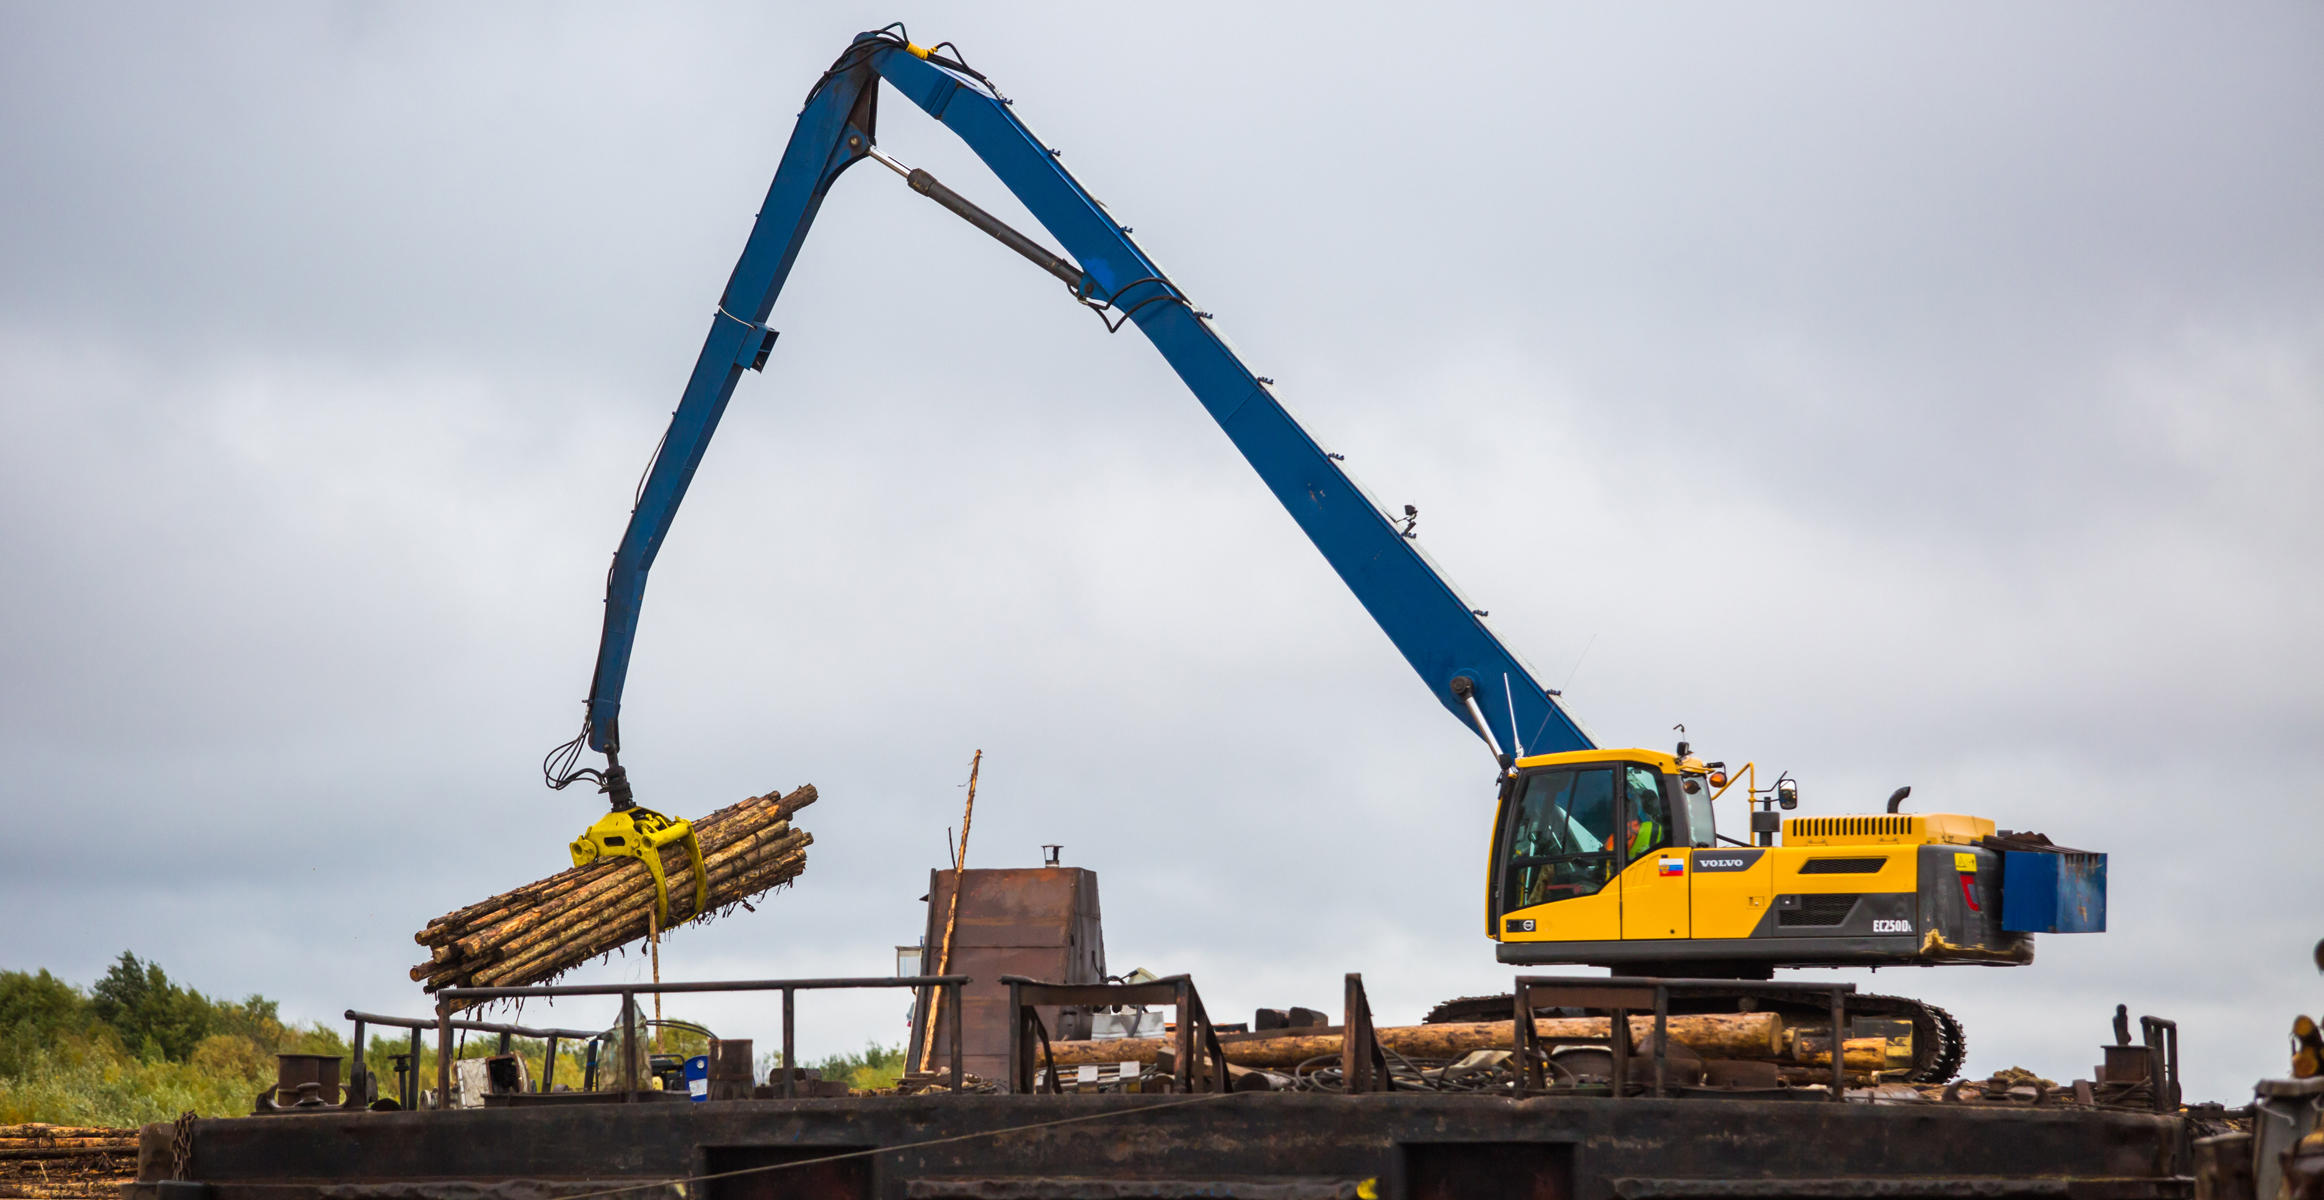 Modified Volvo EC250 excavator with grapple